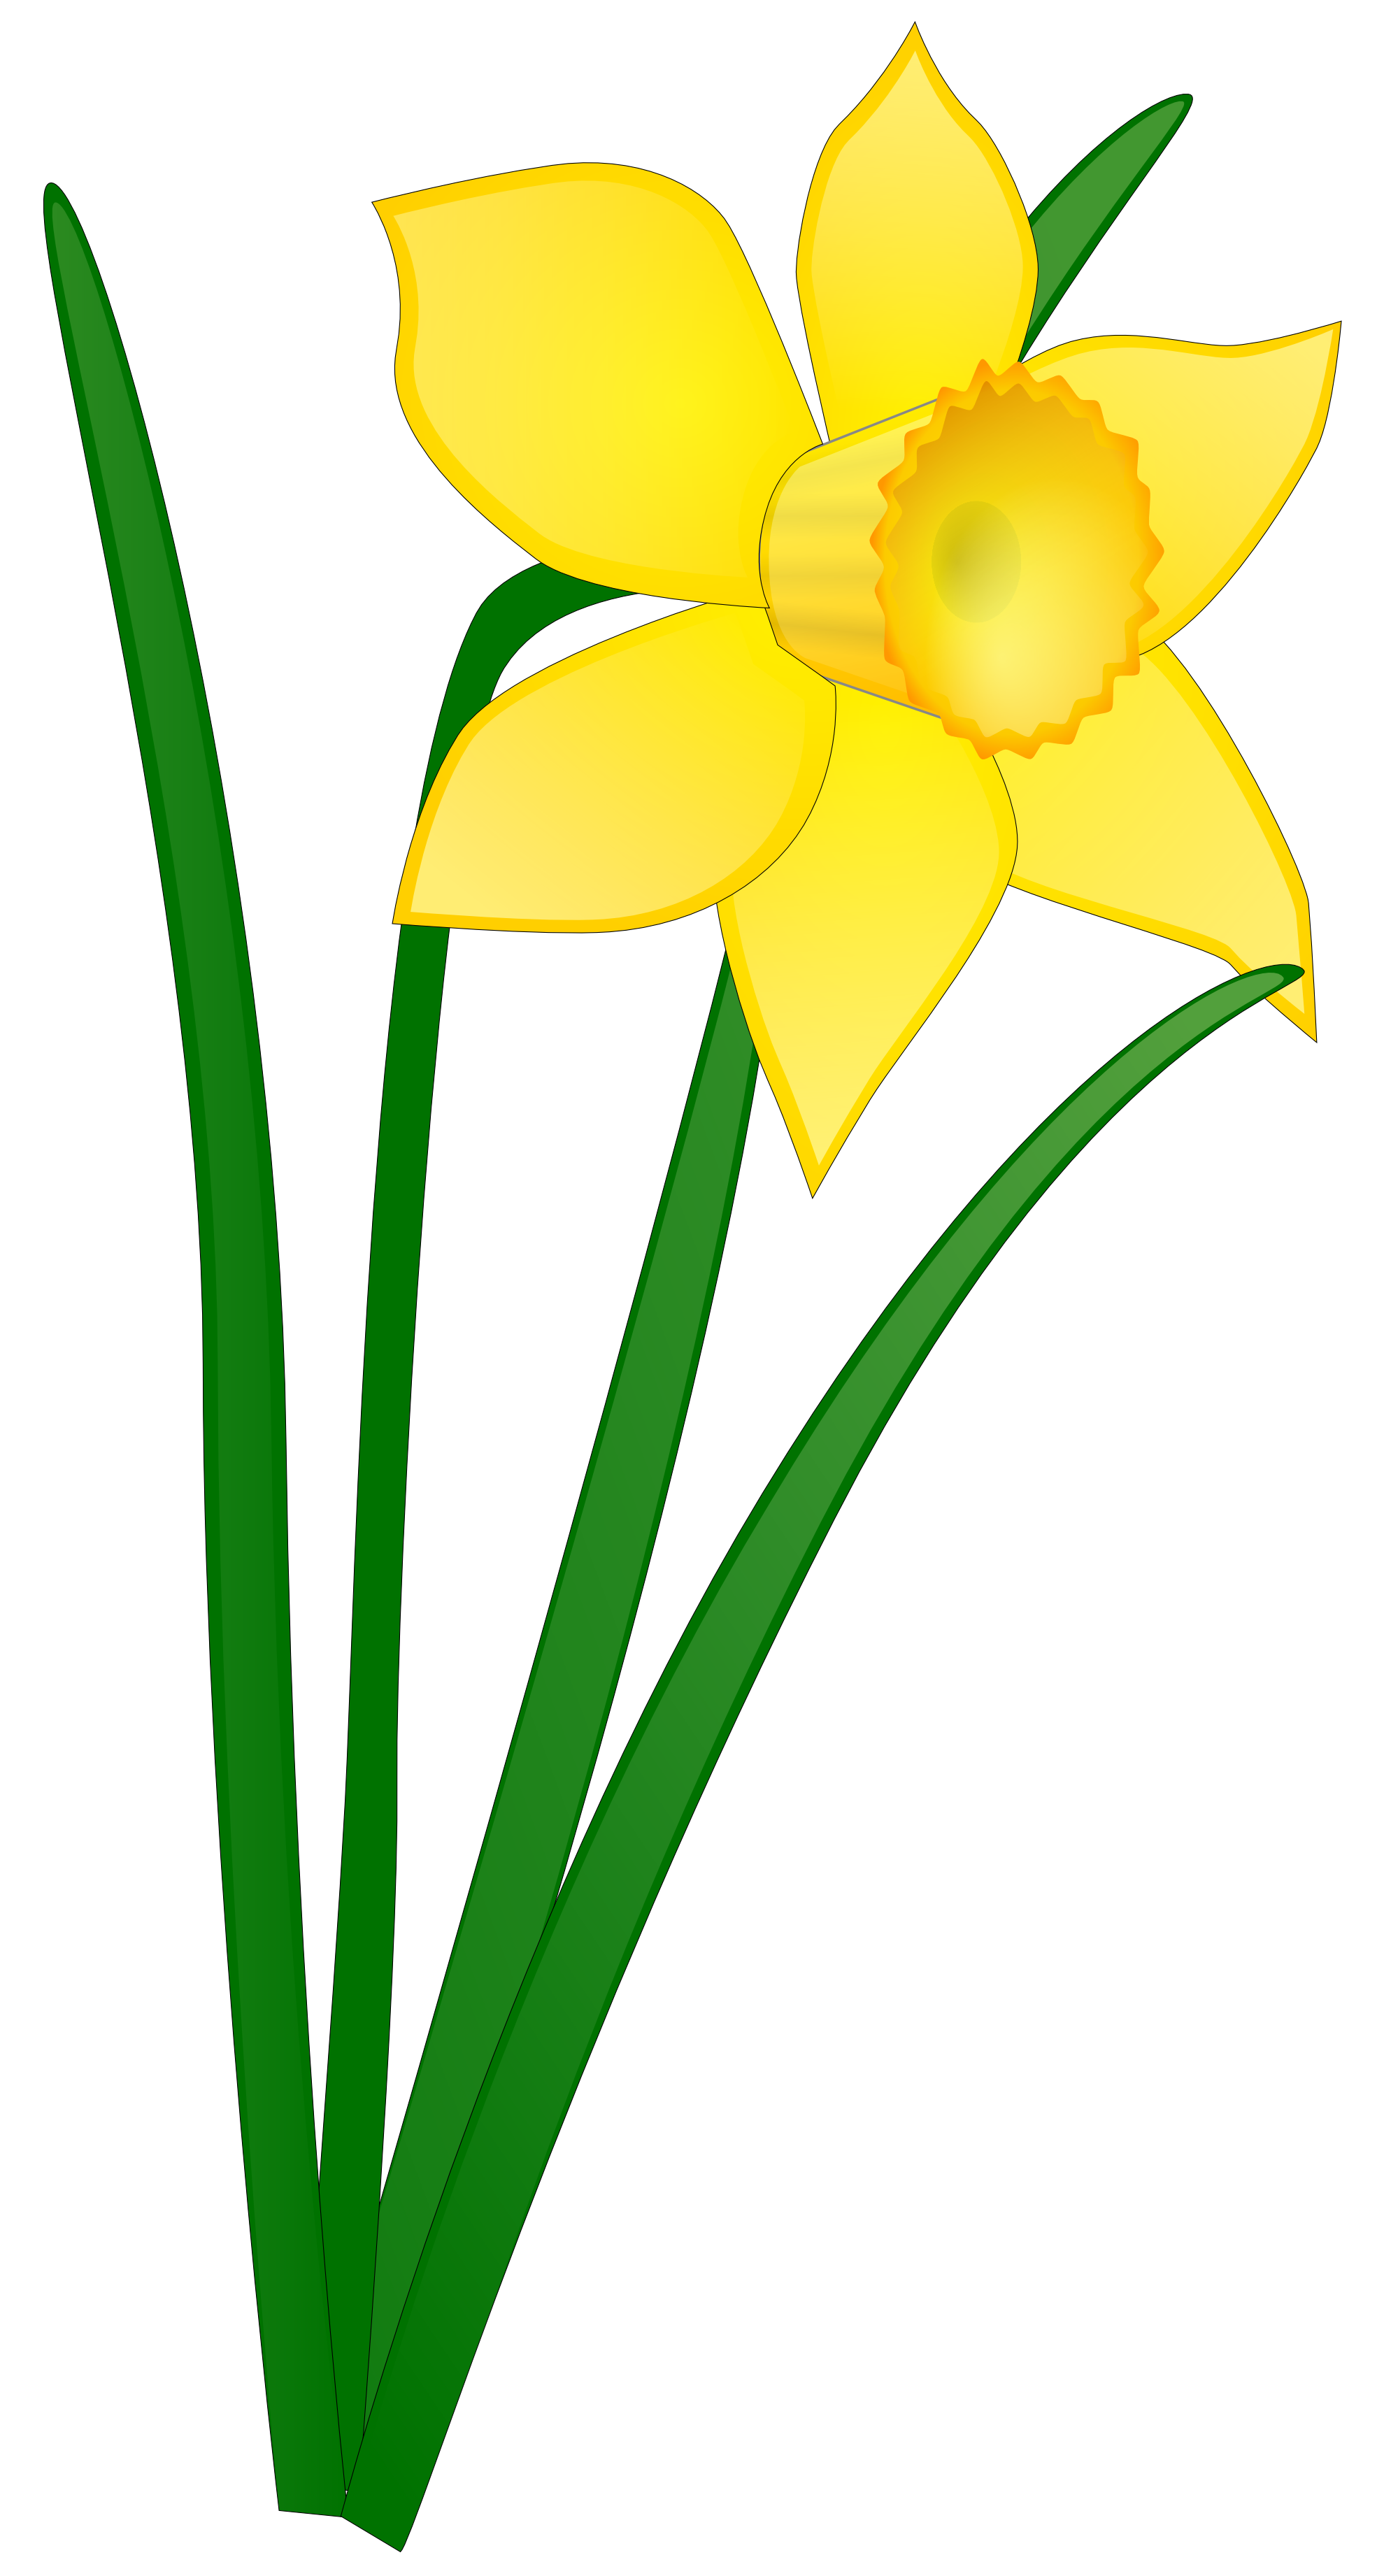 Daffodil Flower Clip Art Clipart Panda Free Clipart Images